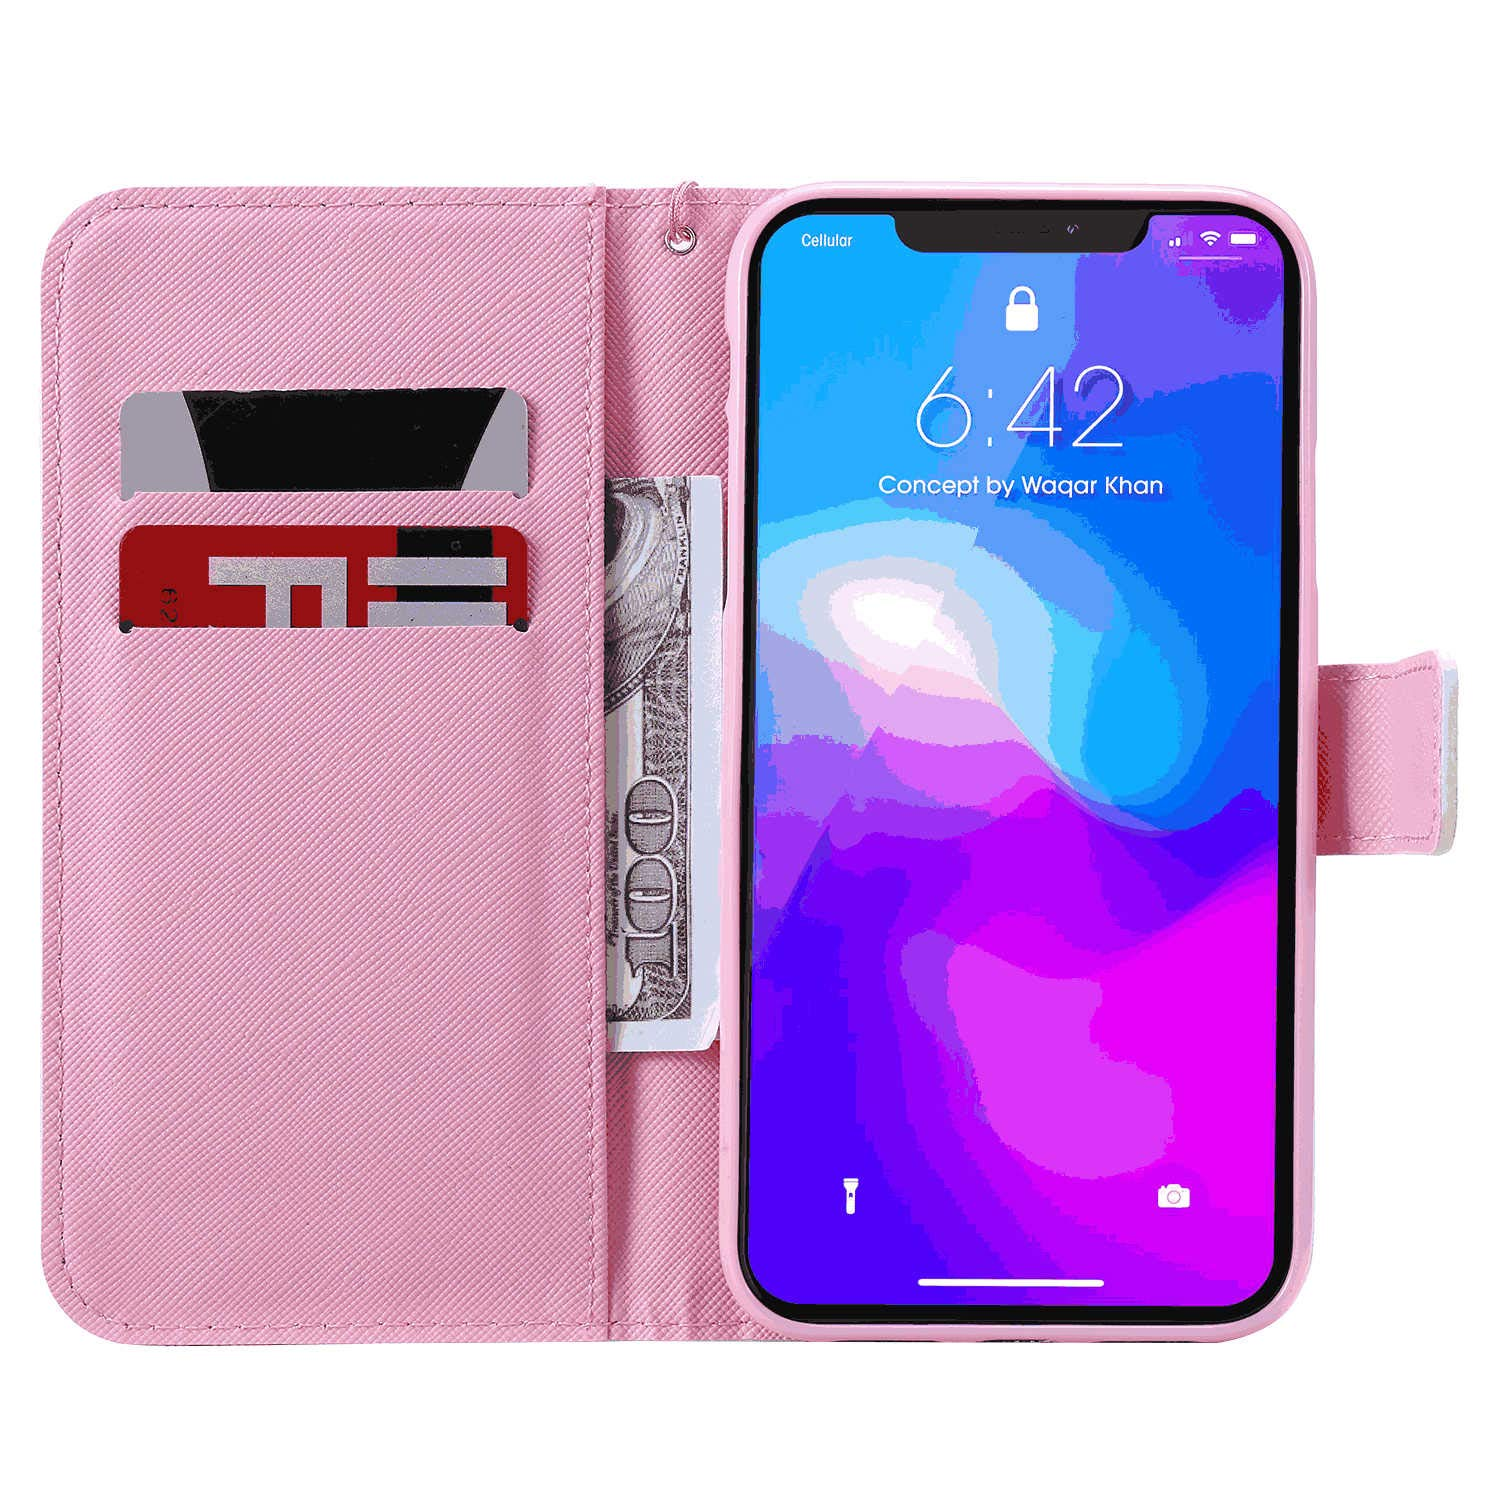 Samsung Galaxy S10E Flip Case Cover for Samsung Galaxy S10E Leather Extra-Shockproof Business Card Holders Kickstand Wallet case with Free Waterproof-Bag